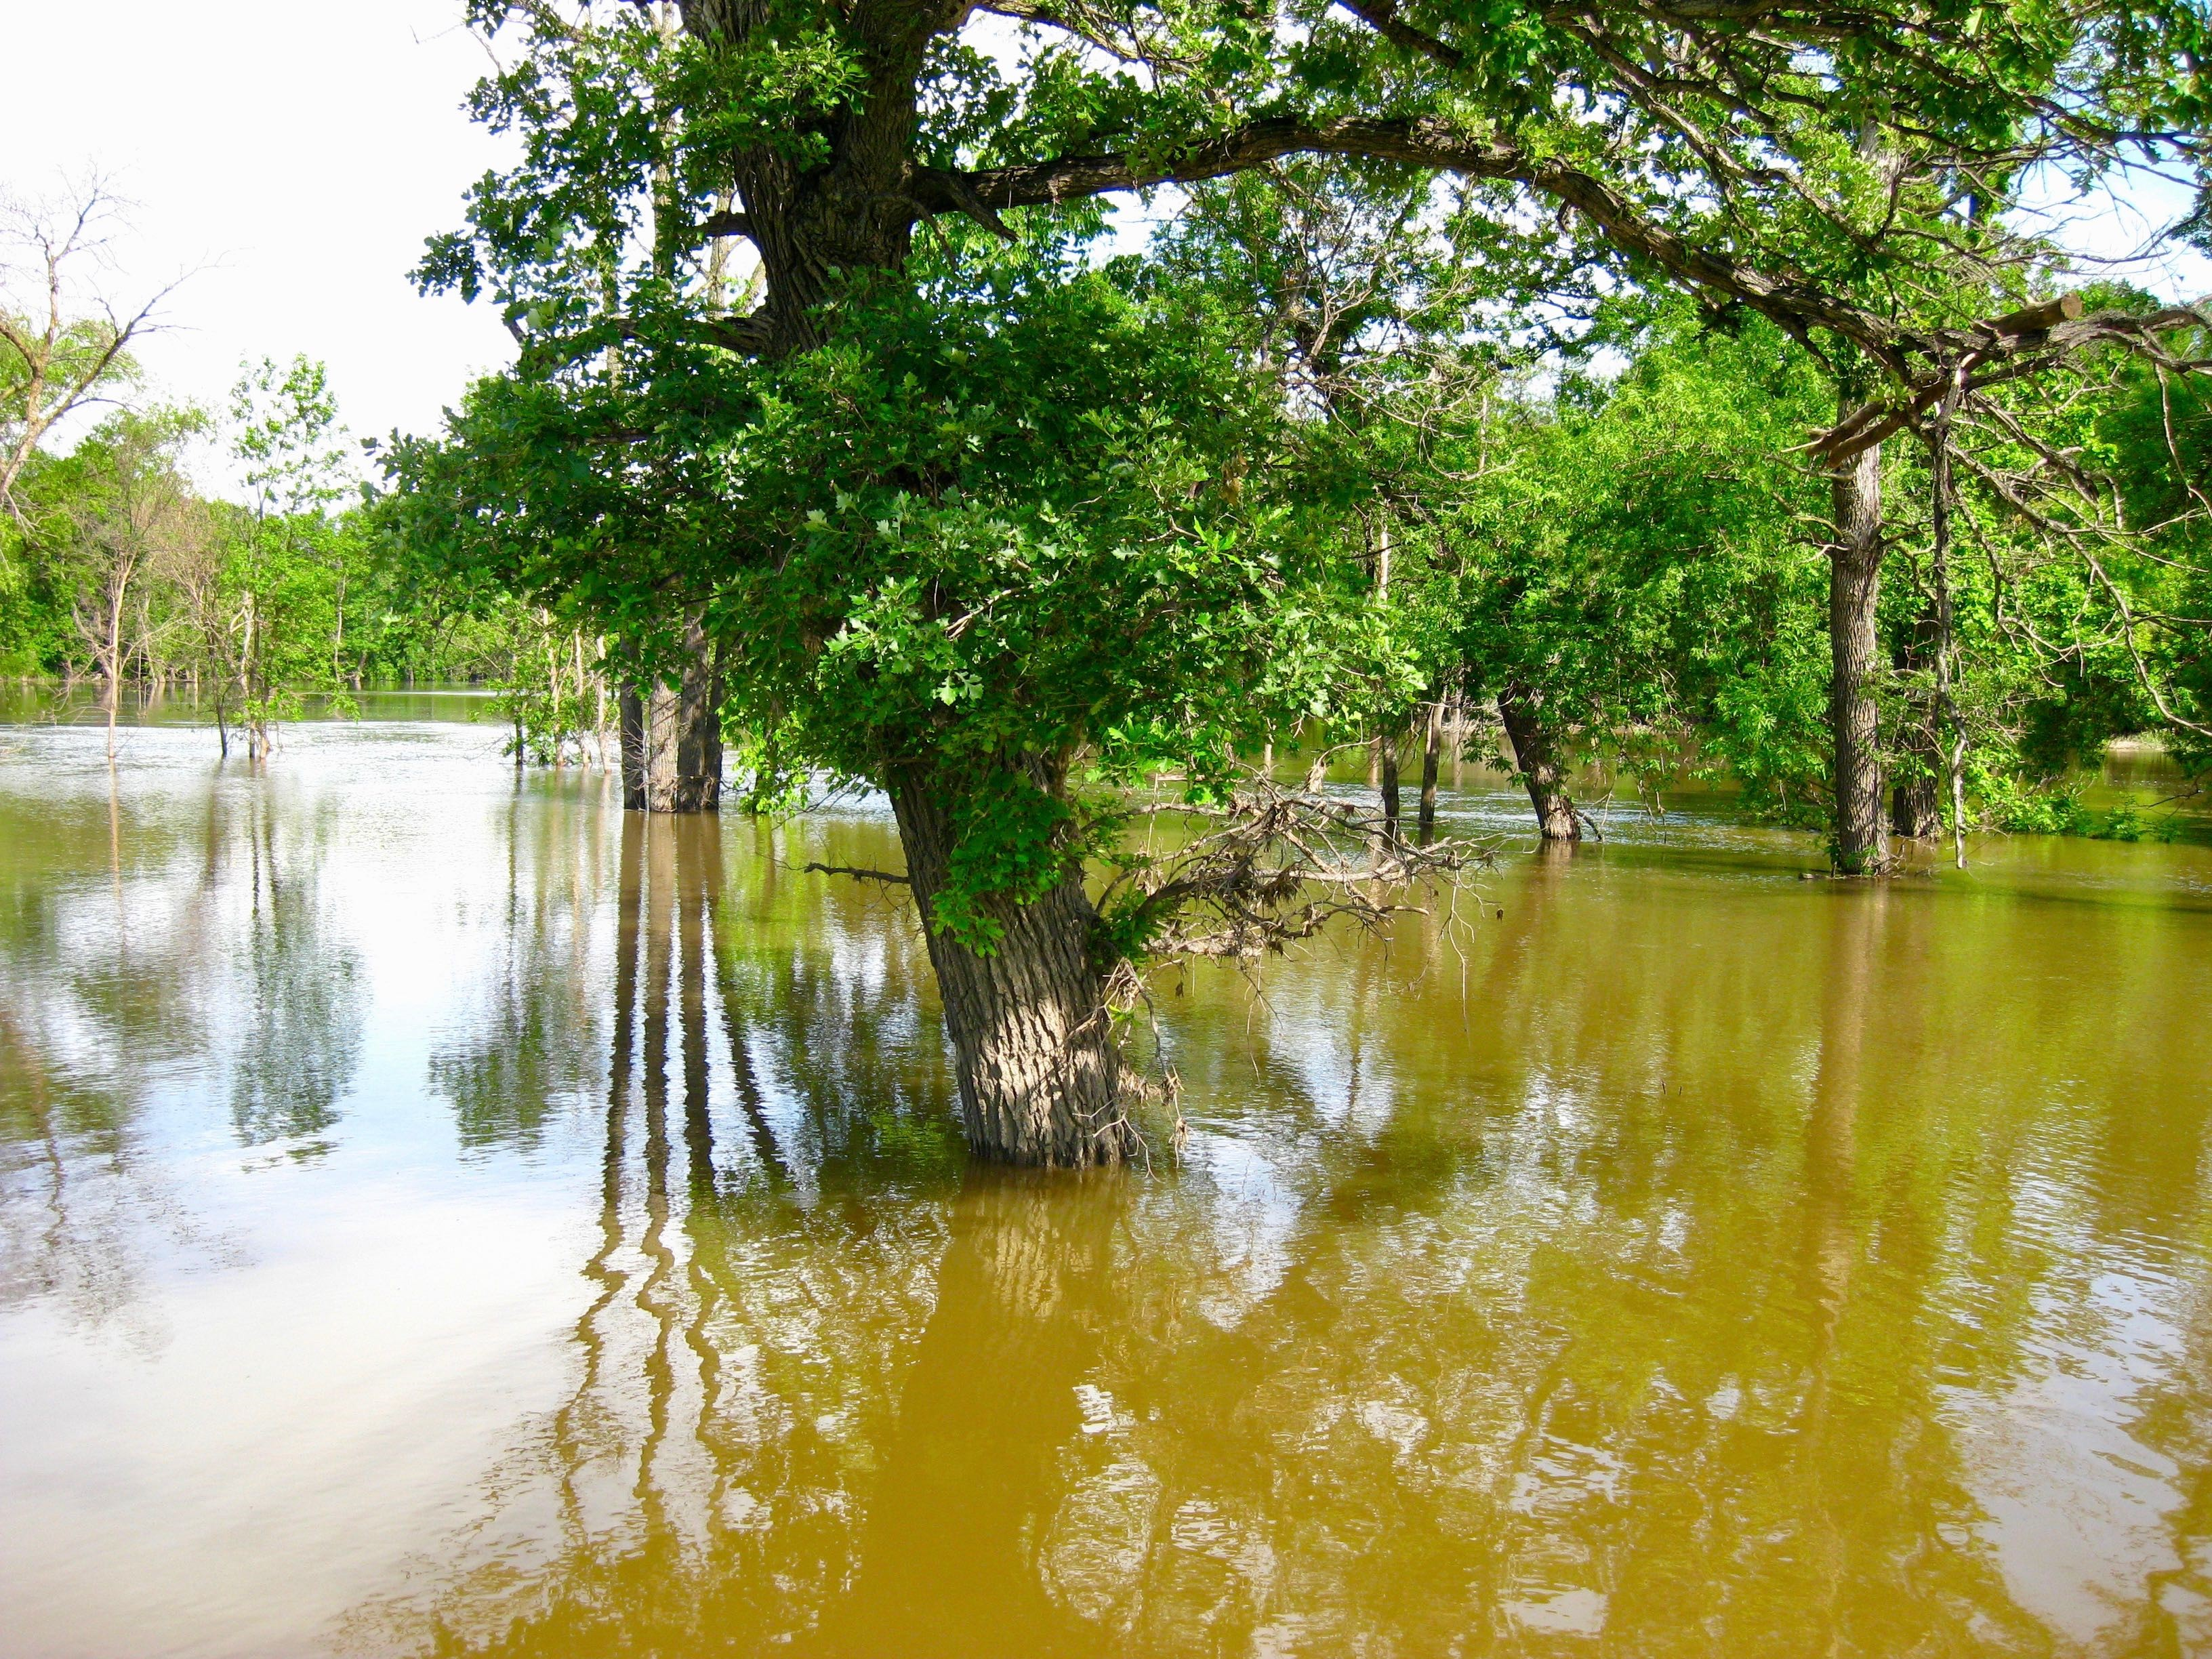 Bur oak trees that are submerged in the Red River, like this one near Fargo, can preserve a permanent record of flooding in their annual growth rings. (NDSU photo)